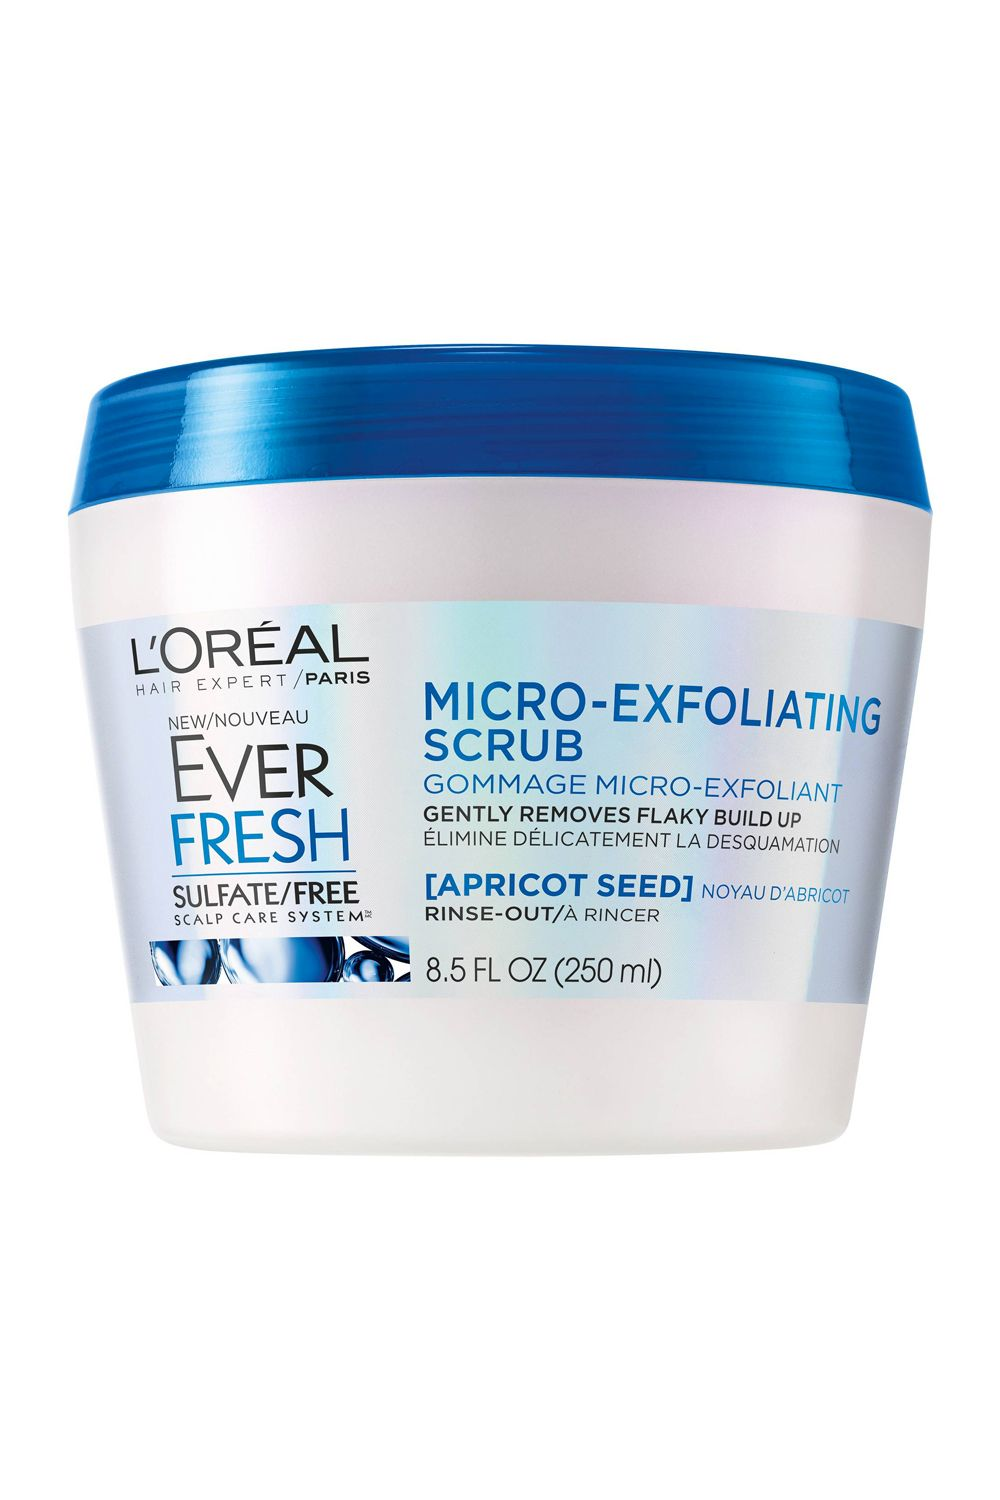 "<p>Perfect for curly hair, this sulfate-free scrub uses crushed apricot seeds to gently exfoliate flakes, itchiness, and buildup.</p><p><i data-redactor-tag=""i"">L'Oreal Paris Hair Care Ever Fresh Micro-Exfoliating Scrub, $9</i></p><p><strong data-redactor-tag=""strong"">BUY IT: <a href=""https://www.target.com/p/l-oreal-174-paris-hair-expert-paris-ever-fresh-rinse-out-apricot-seed-micro-exfoliating-scrub-8-5oz/-/A-51267857?"">target.com</a>. </strong></p>"